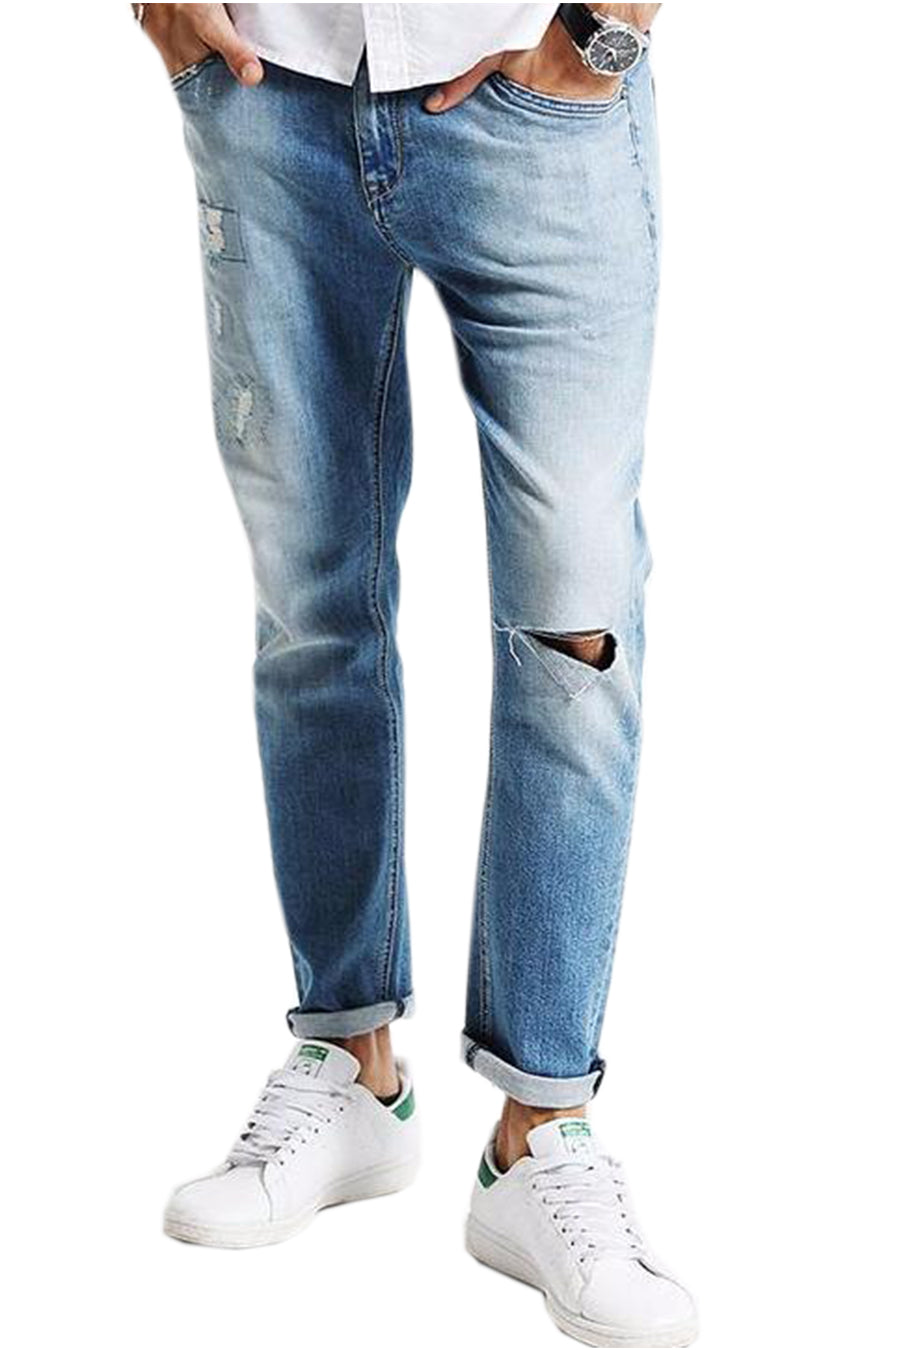 Stonewashed Pencil Jeans